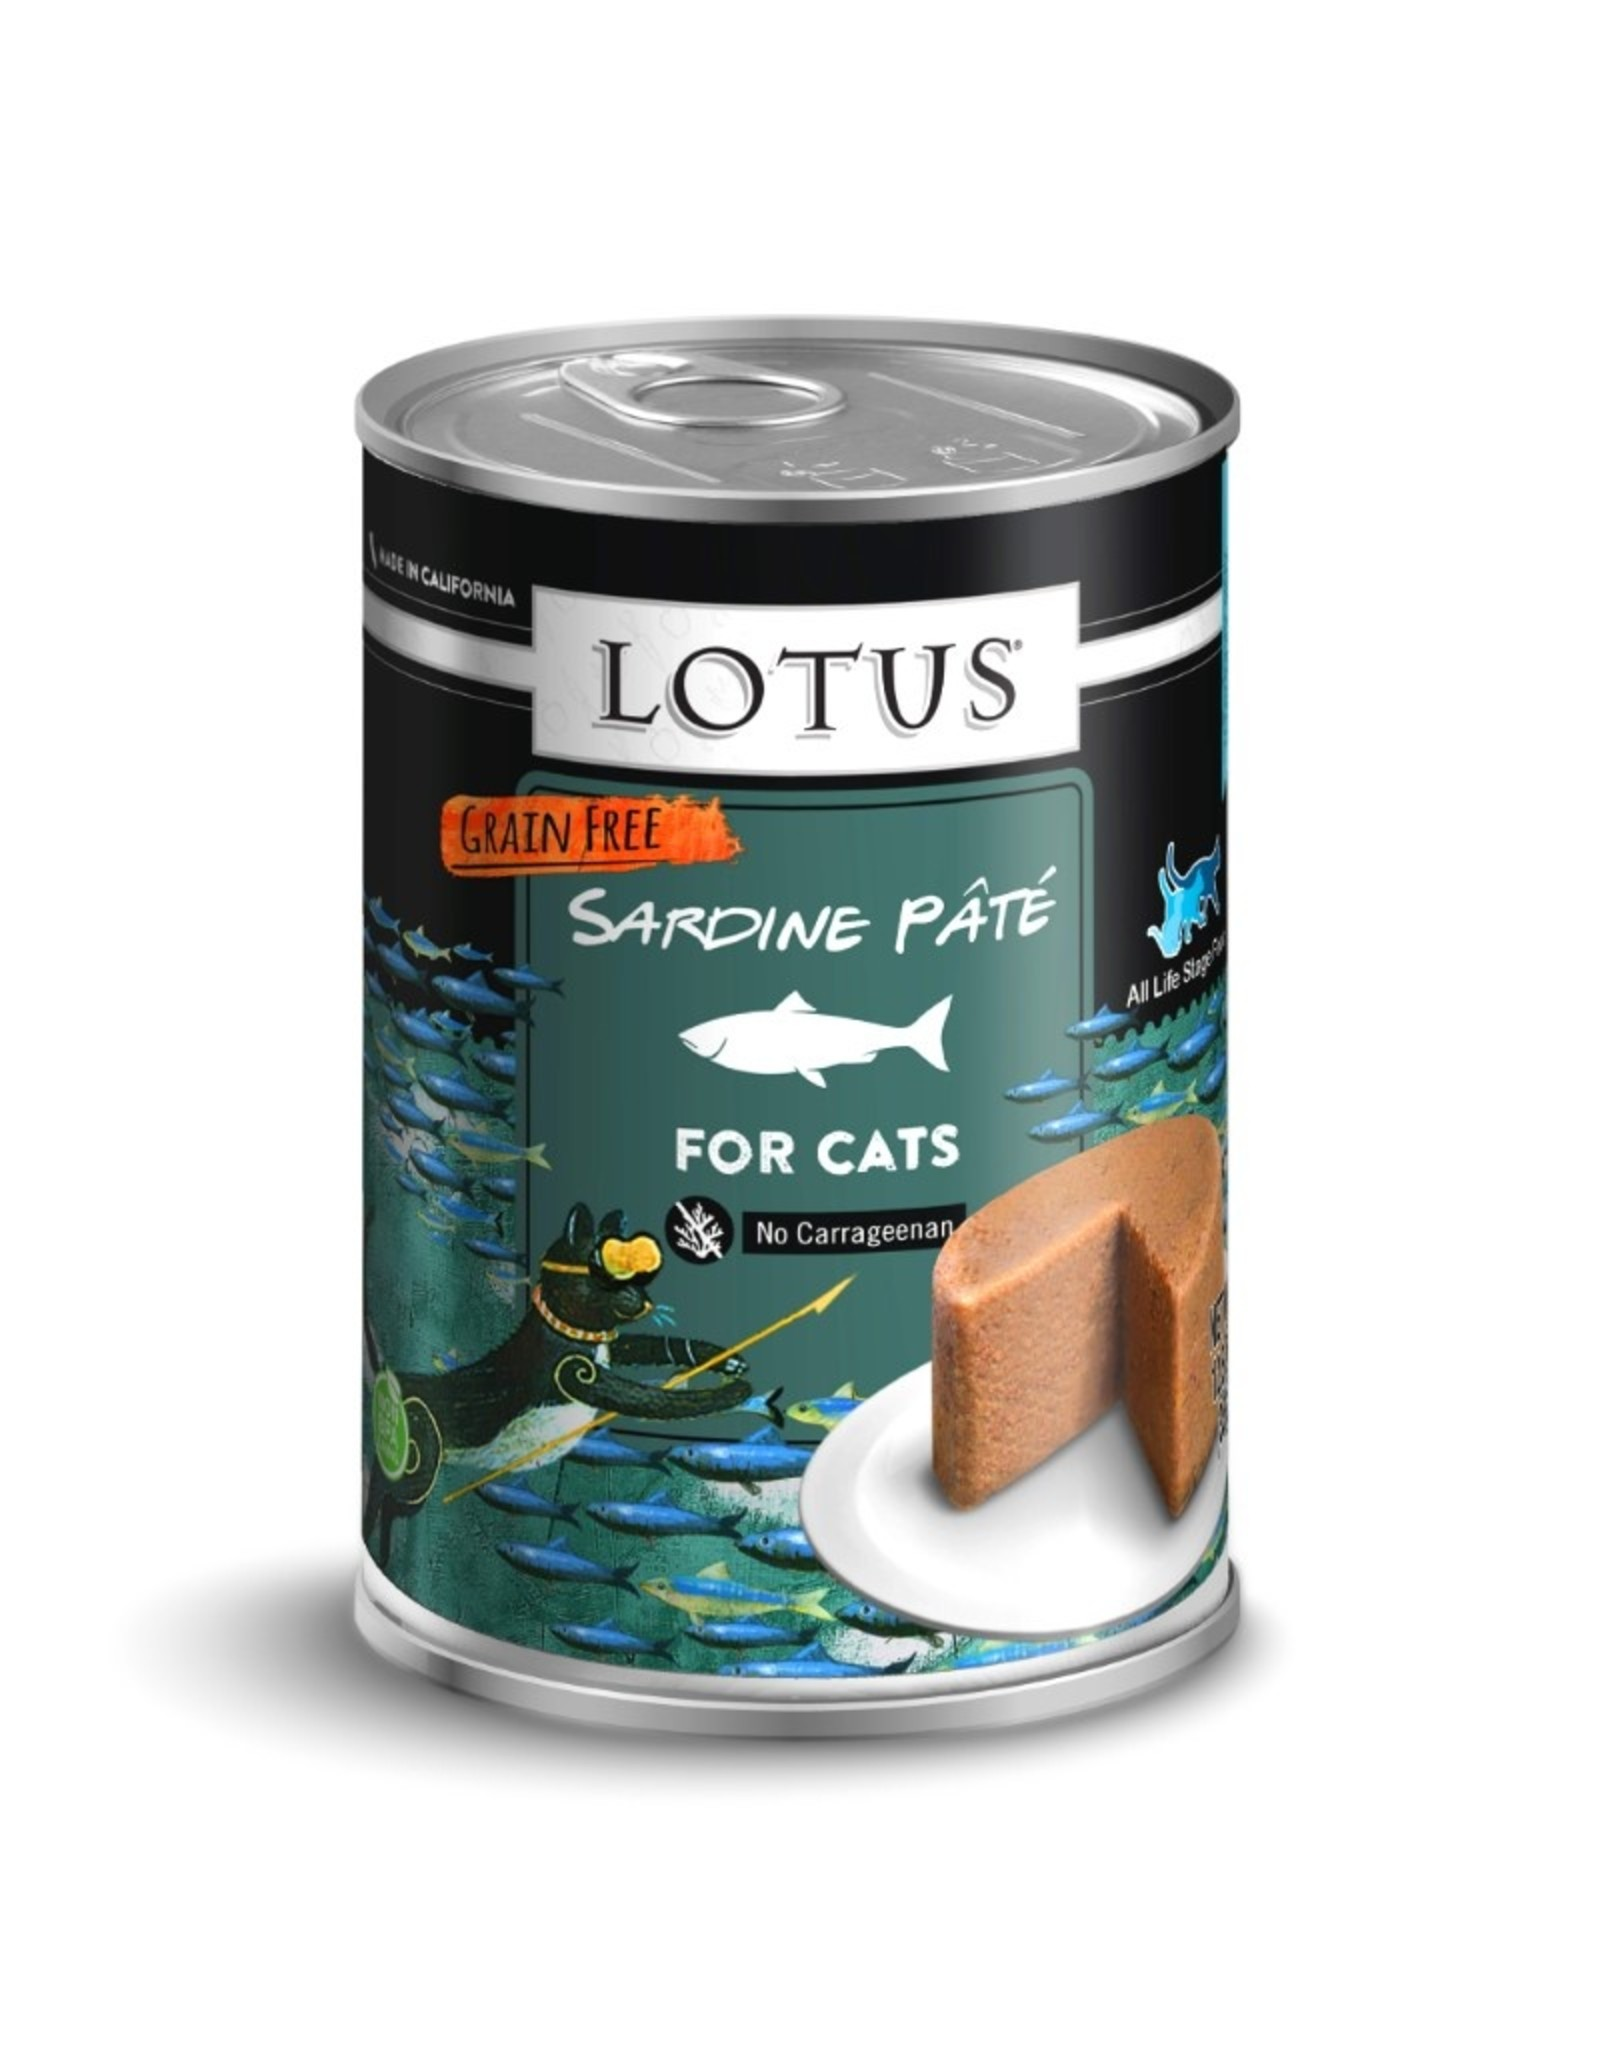 Lotus Pet Food Lotus Pet Food Cat Sardine Pate